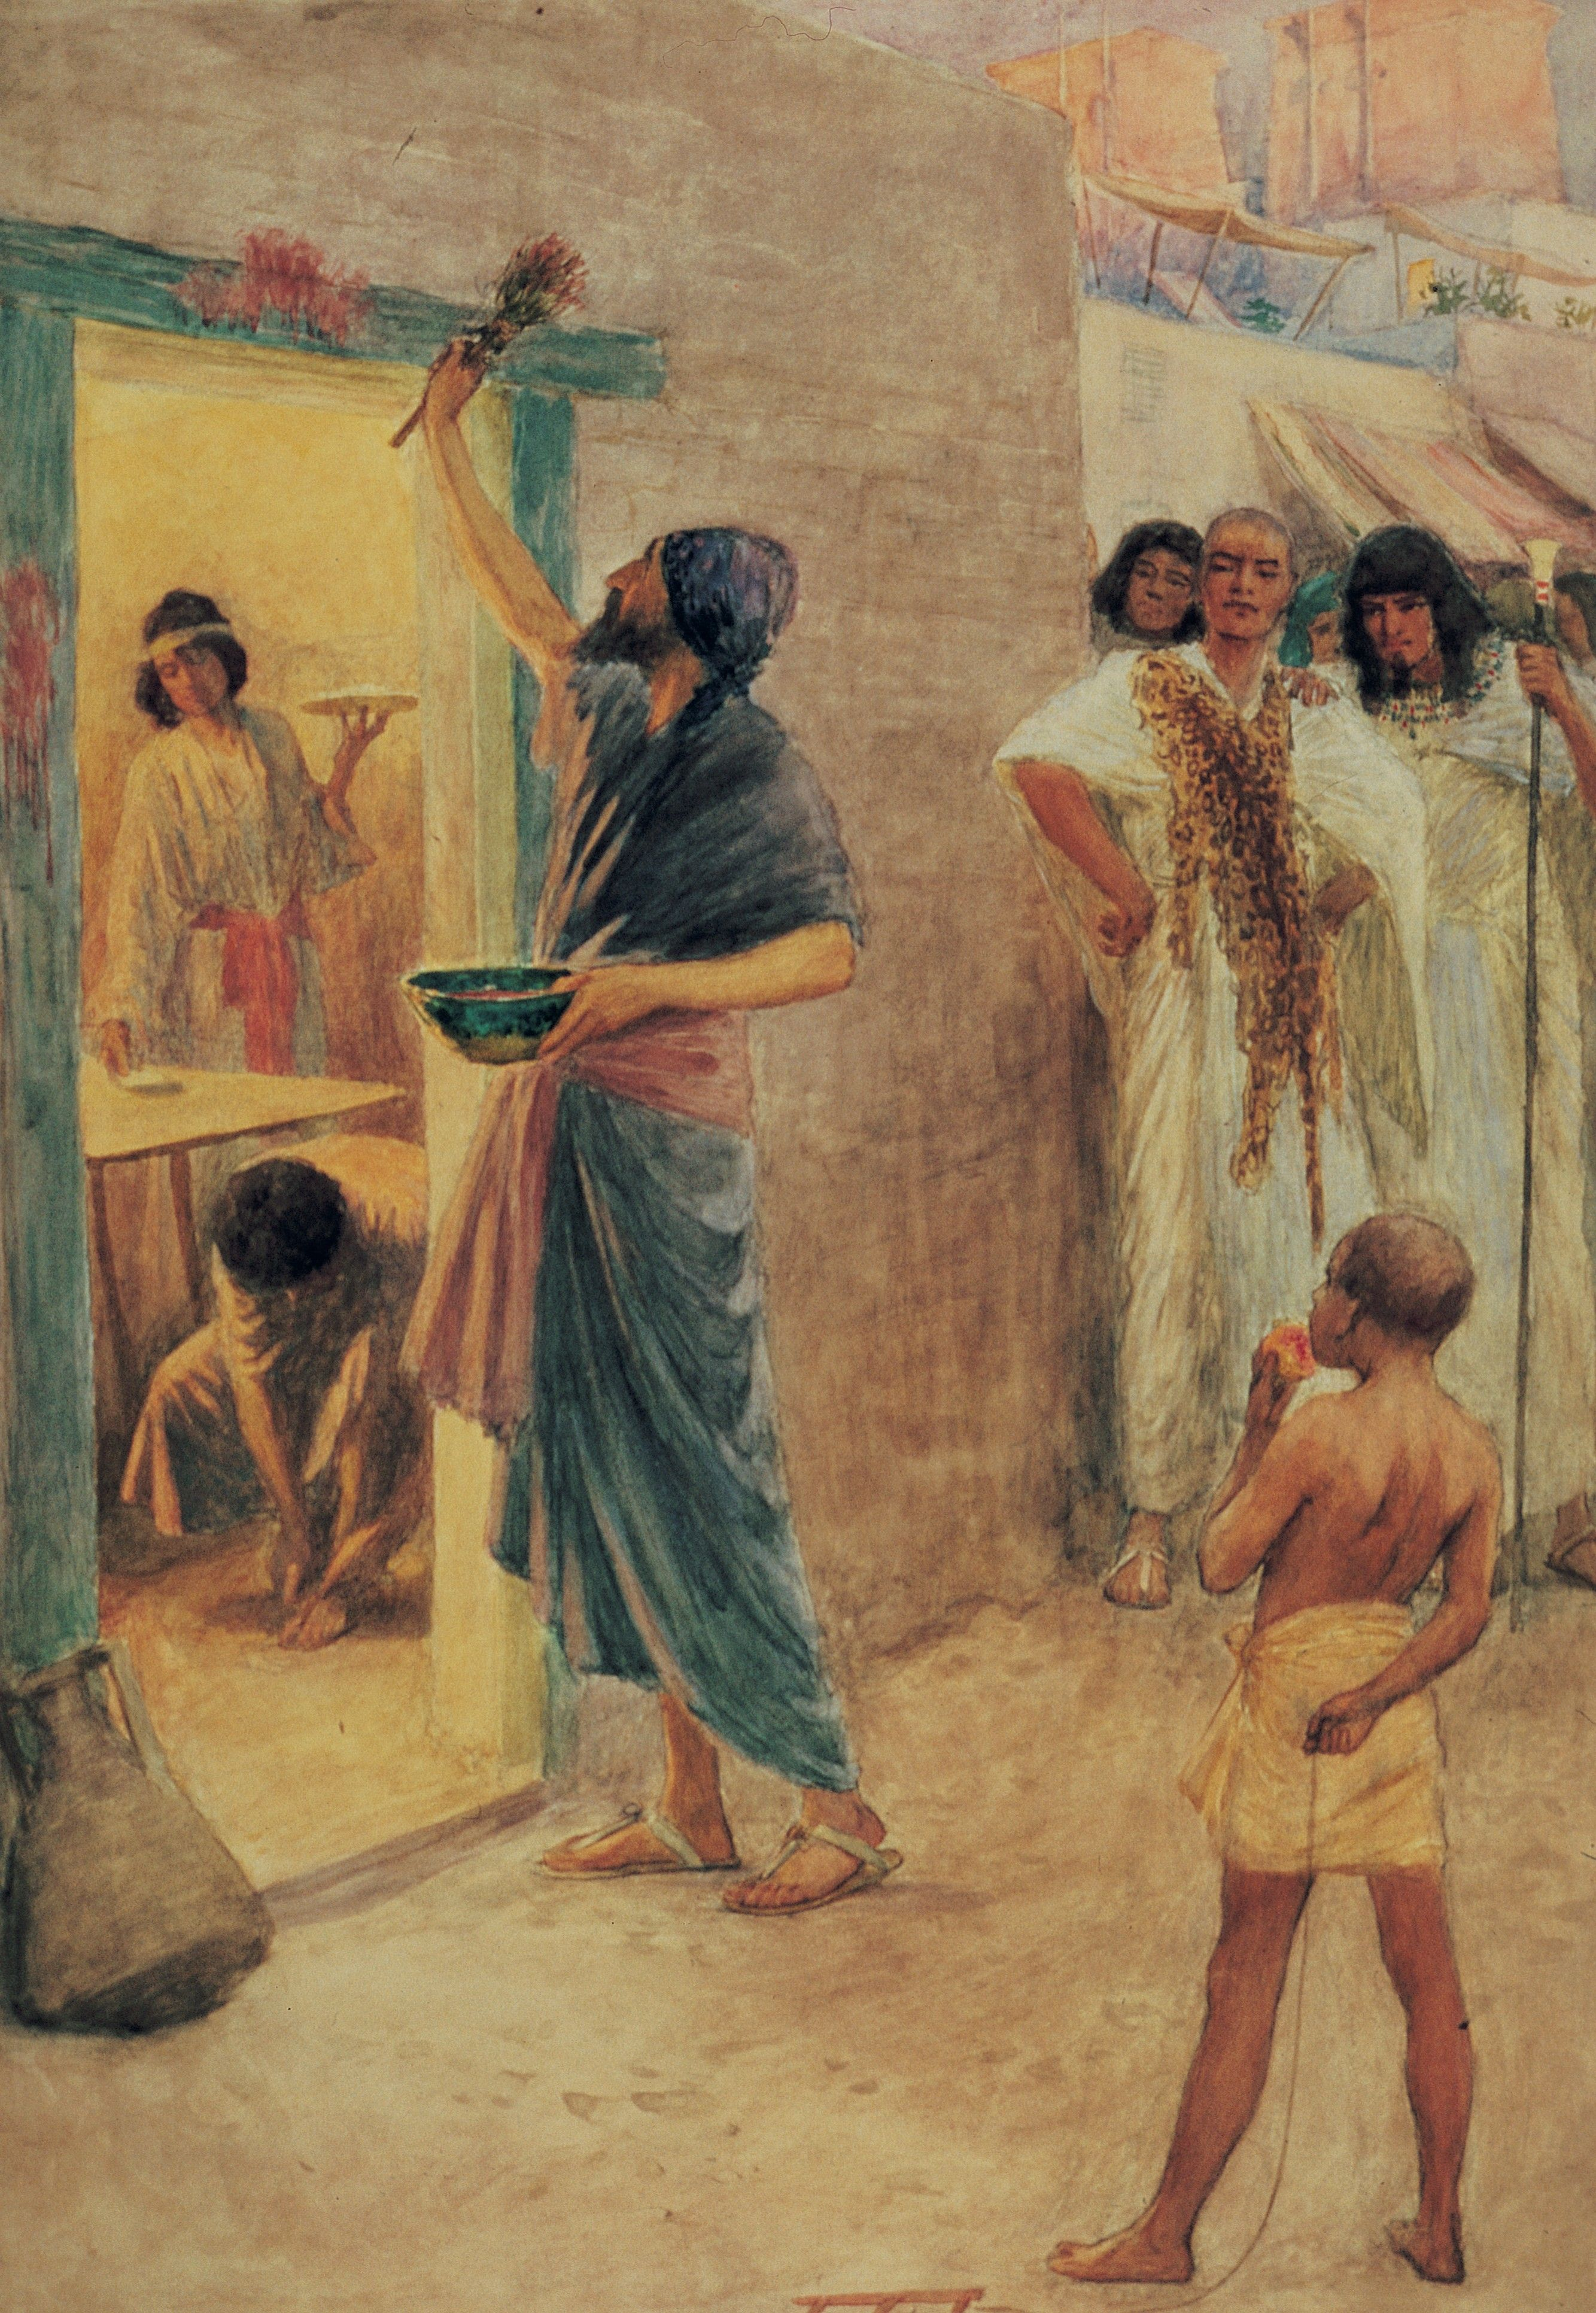 The Passover, by W. H. Margetson